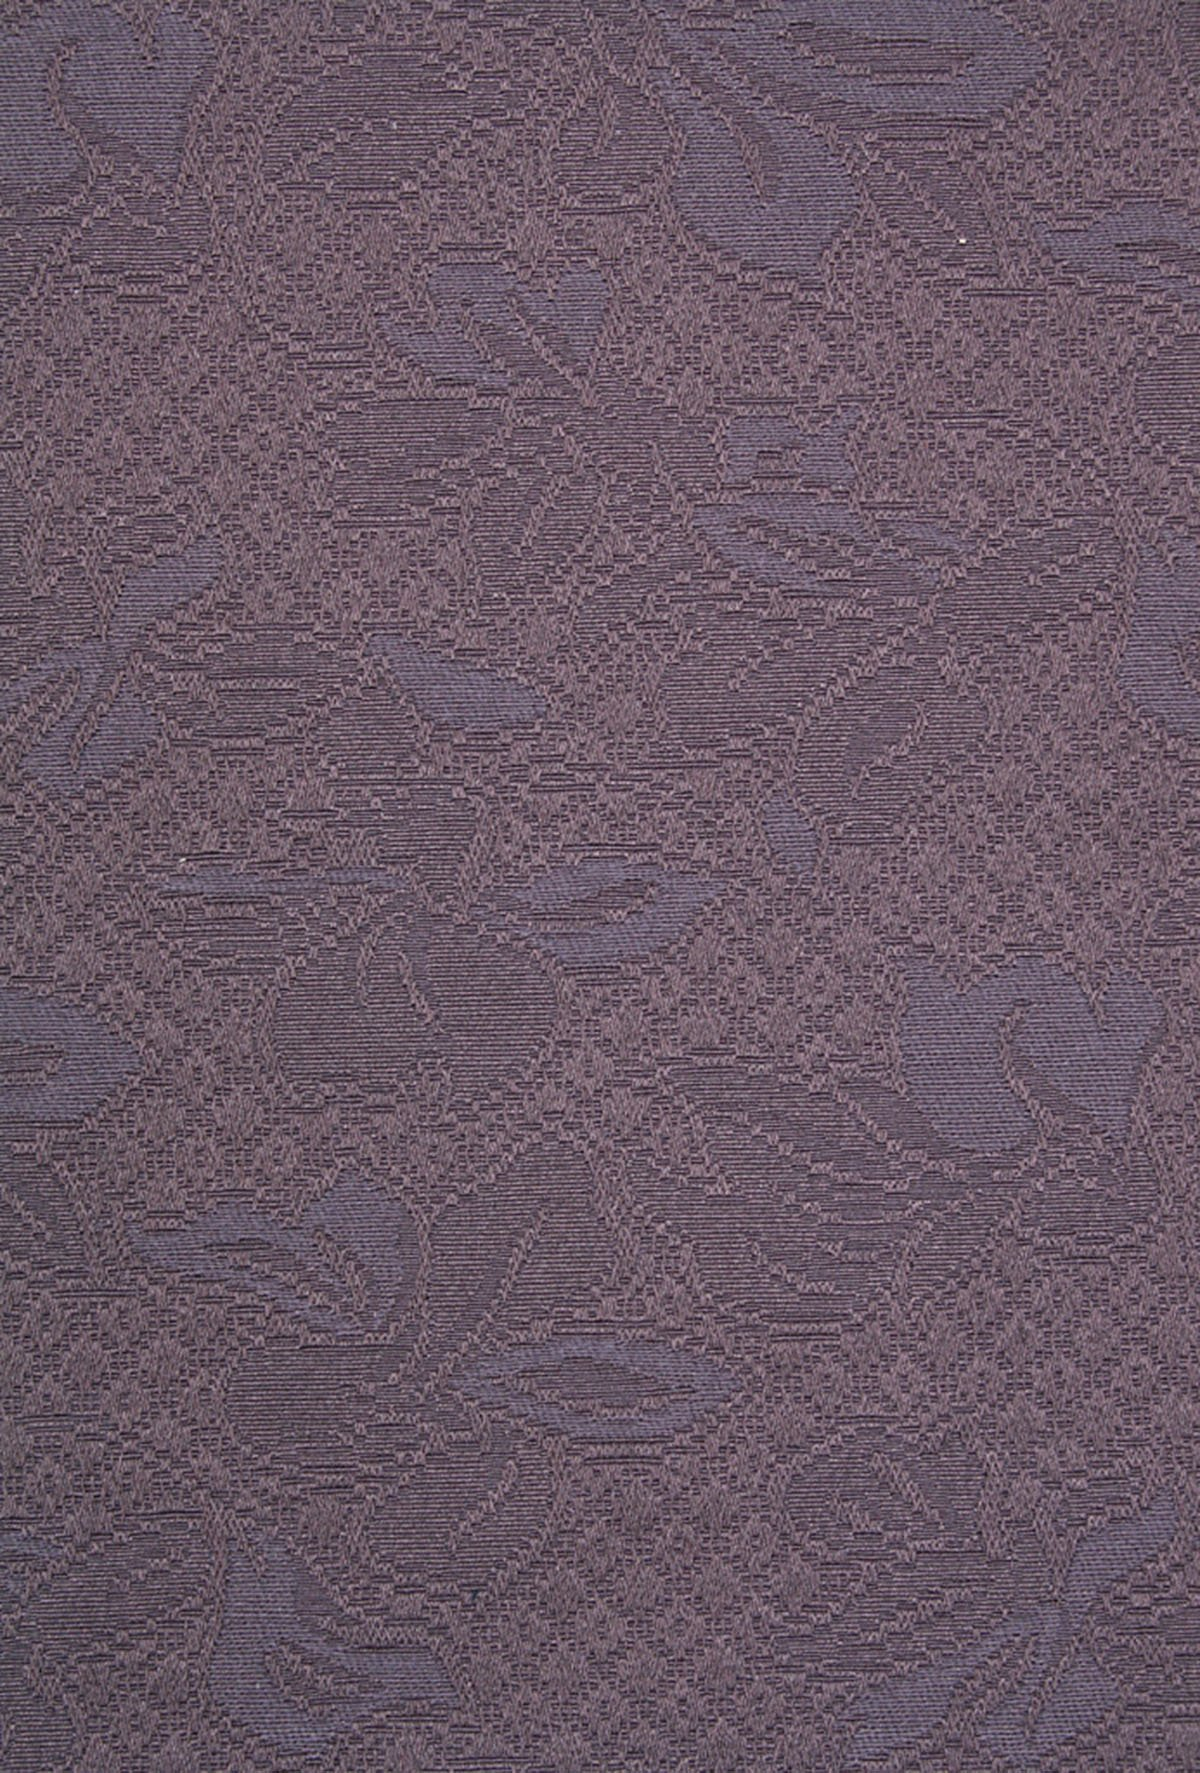 Healthcare Interiors Sea Spice Unquilted Twin Bed Spread (Cassis) by Healthcare Interiors (Image #1)